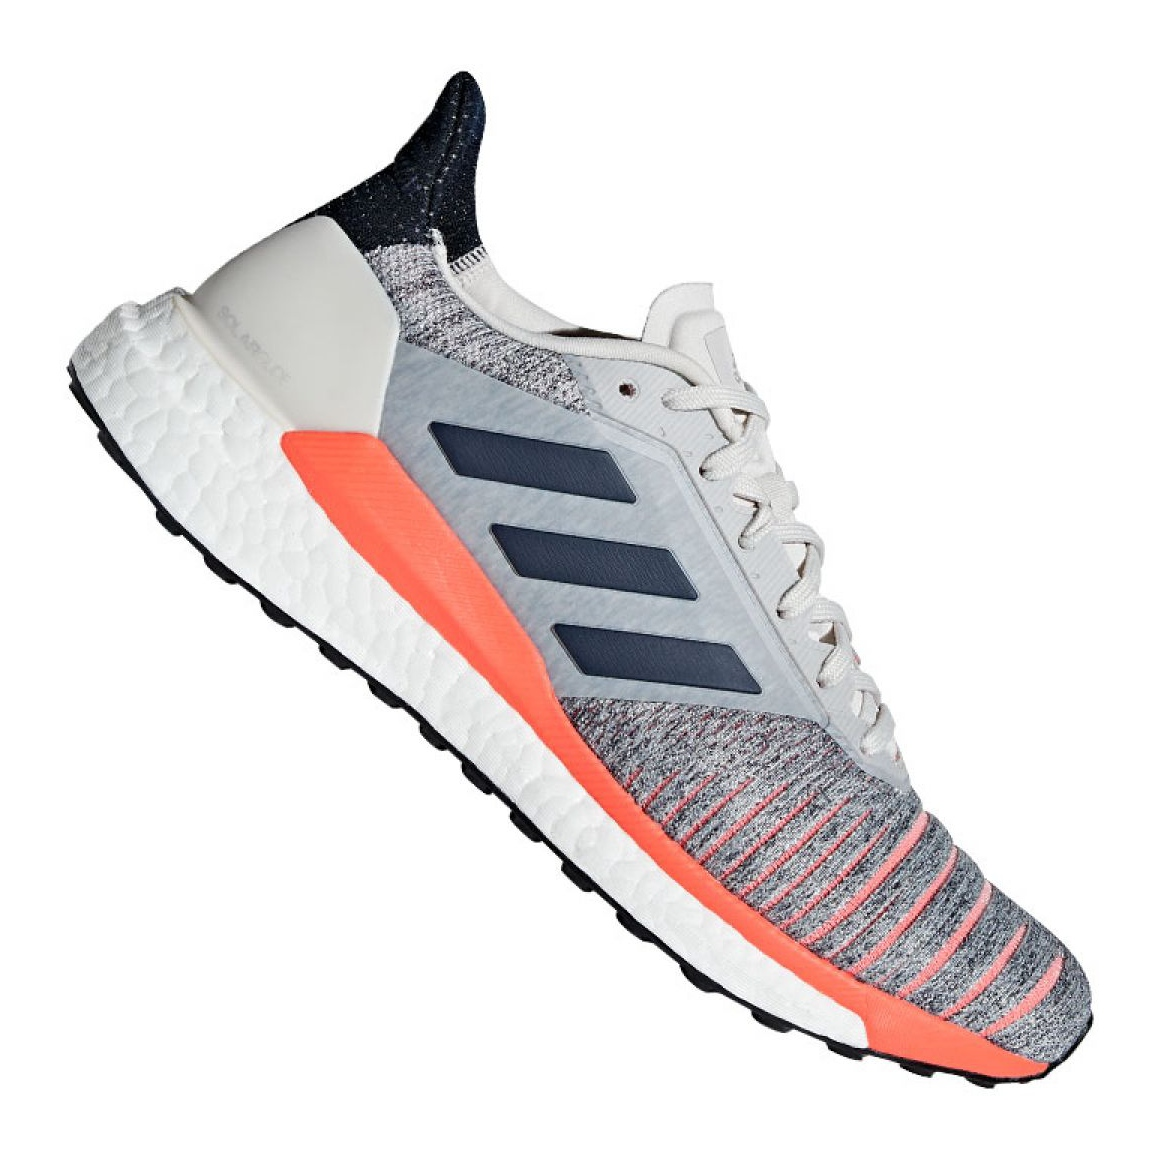 detailed look 1adee fd4a4 Grey Adidas Solar Glide M D97080 shoes